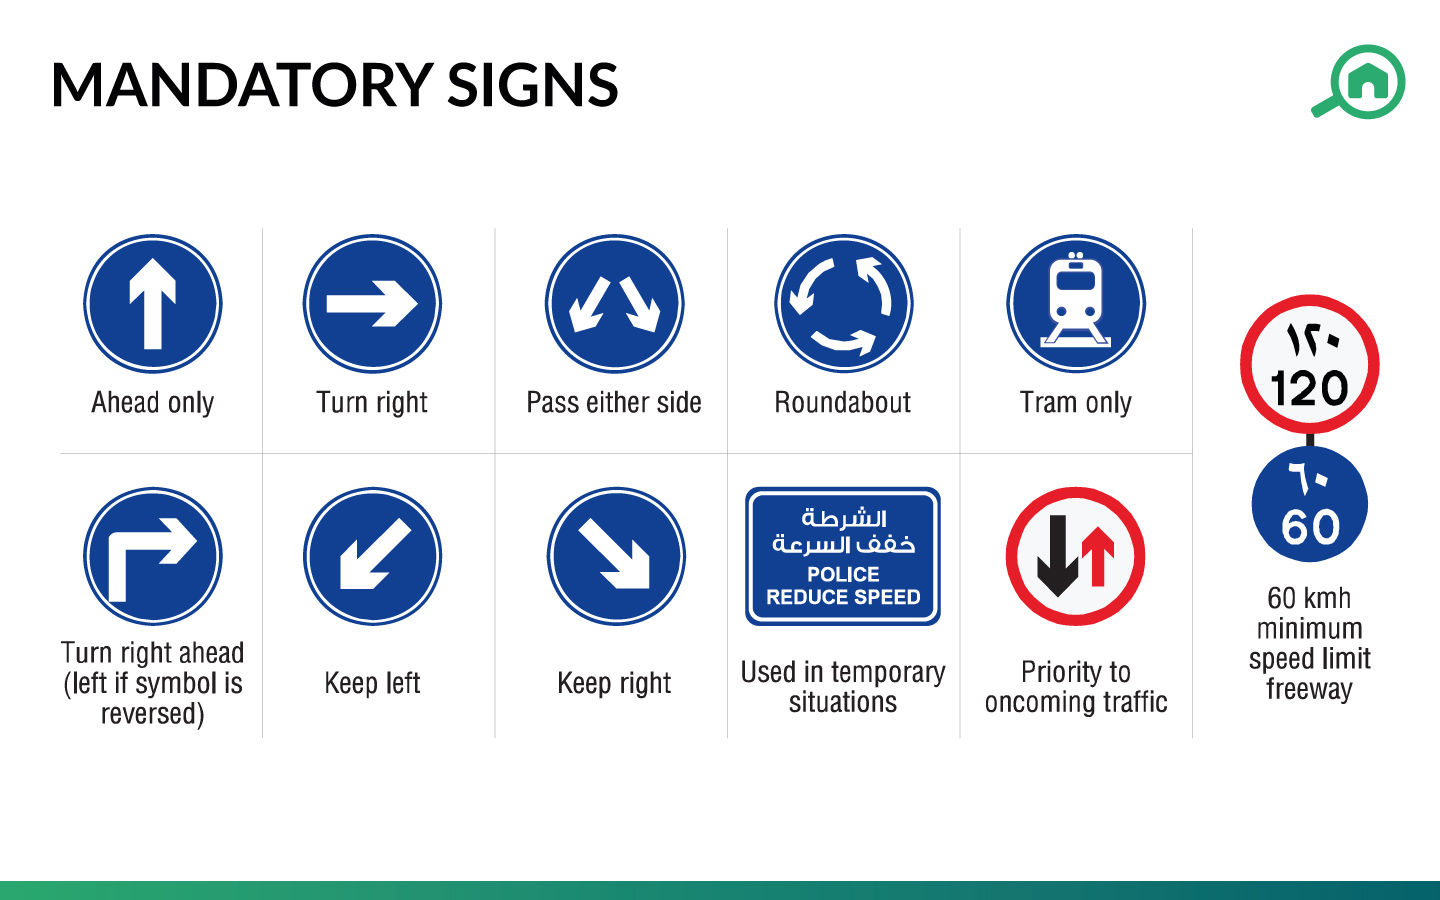 Mandatory road signs to ensure safety